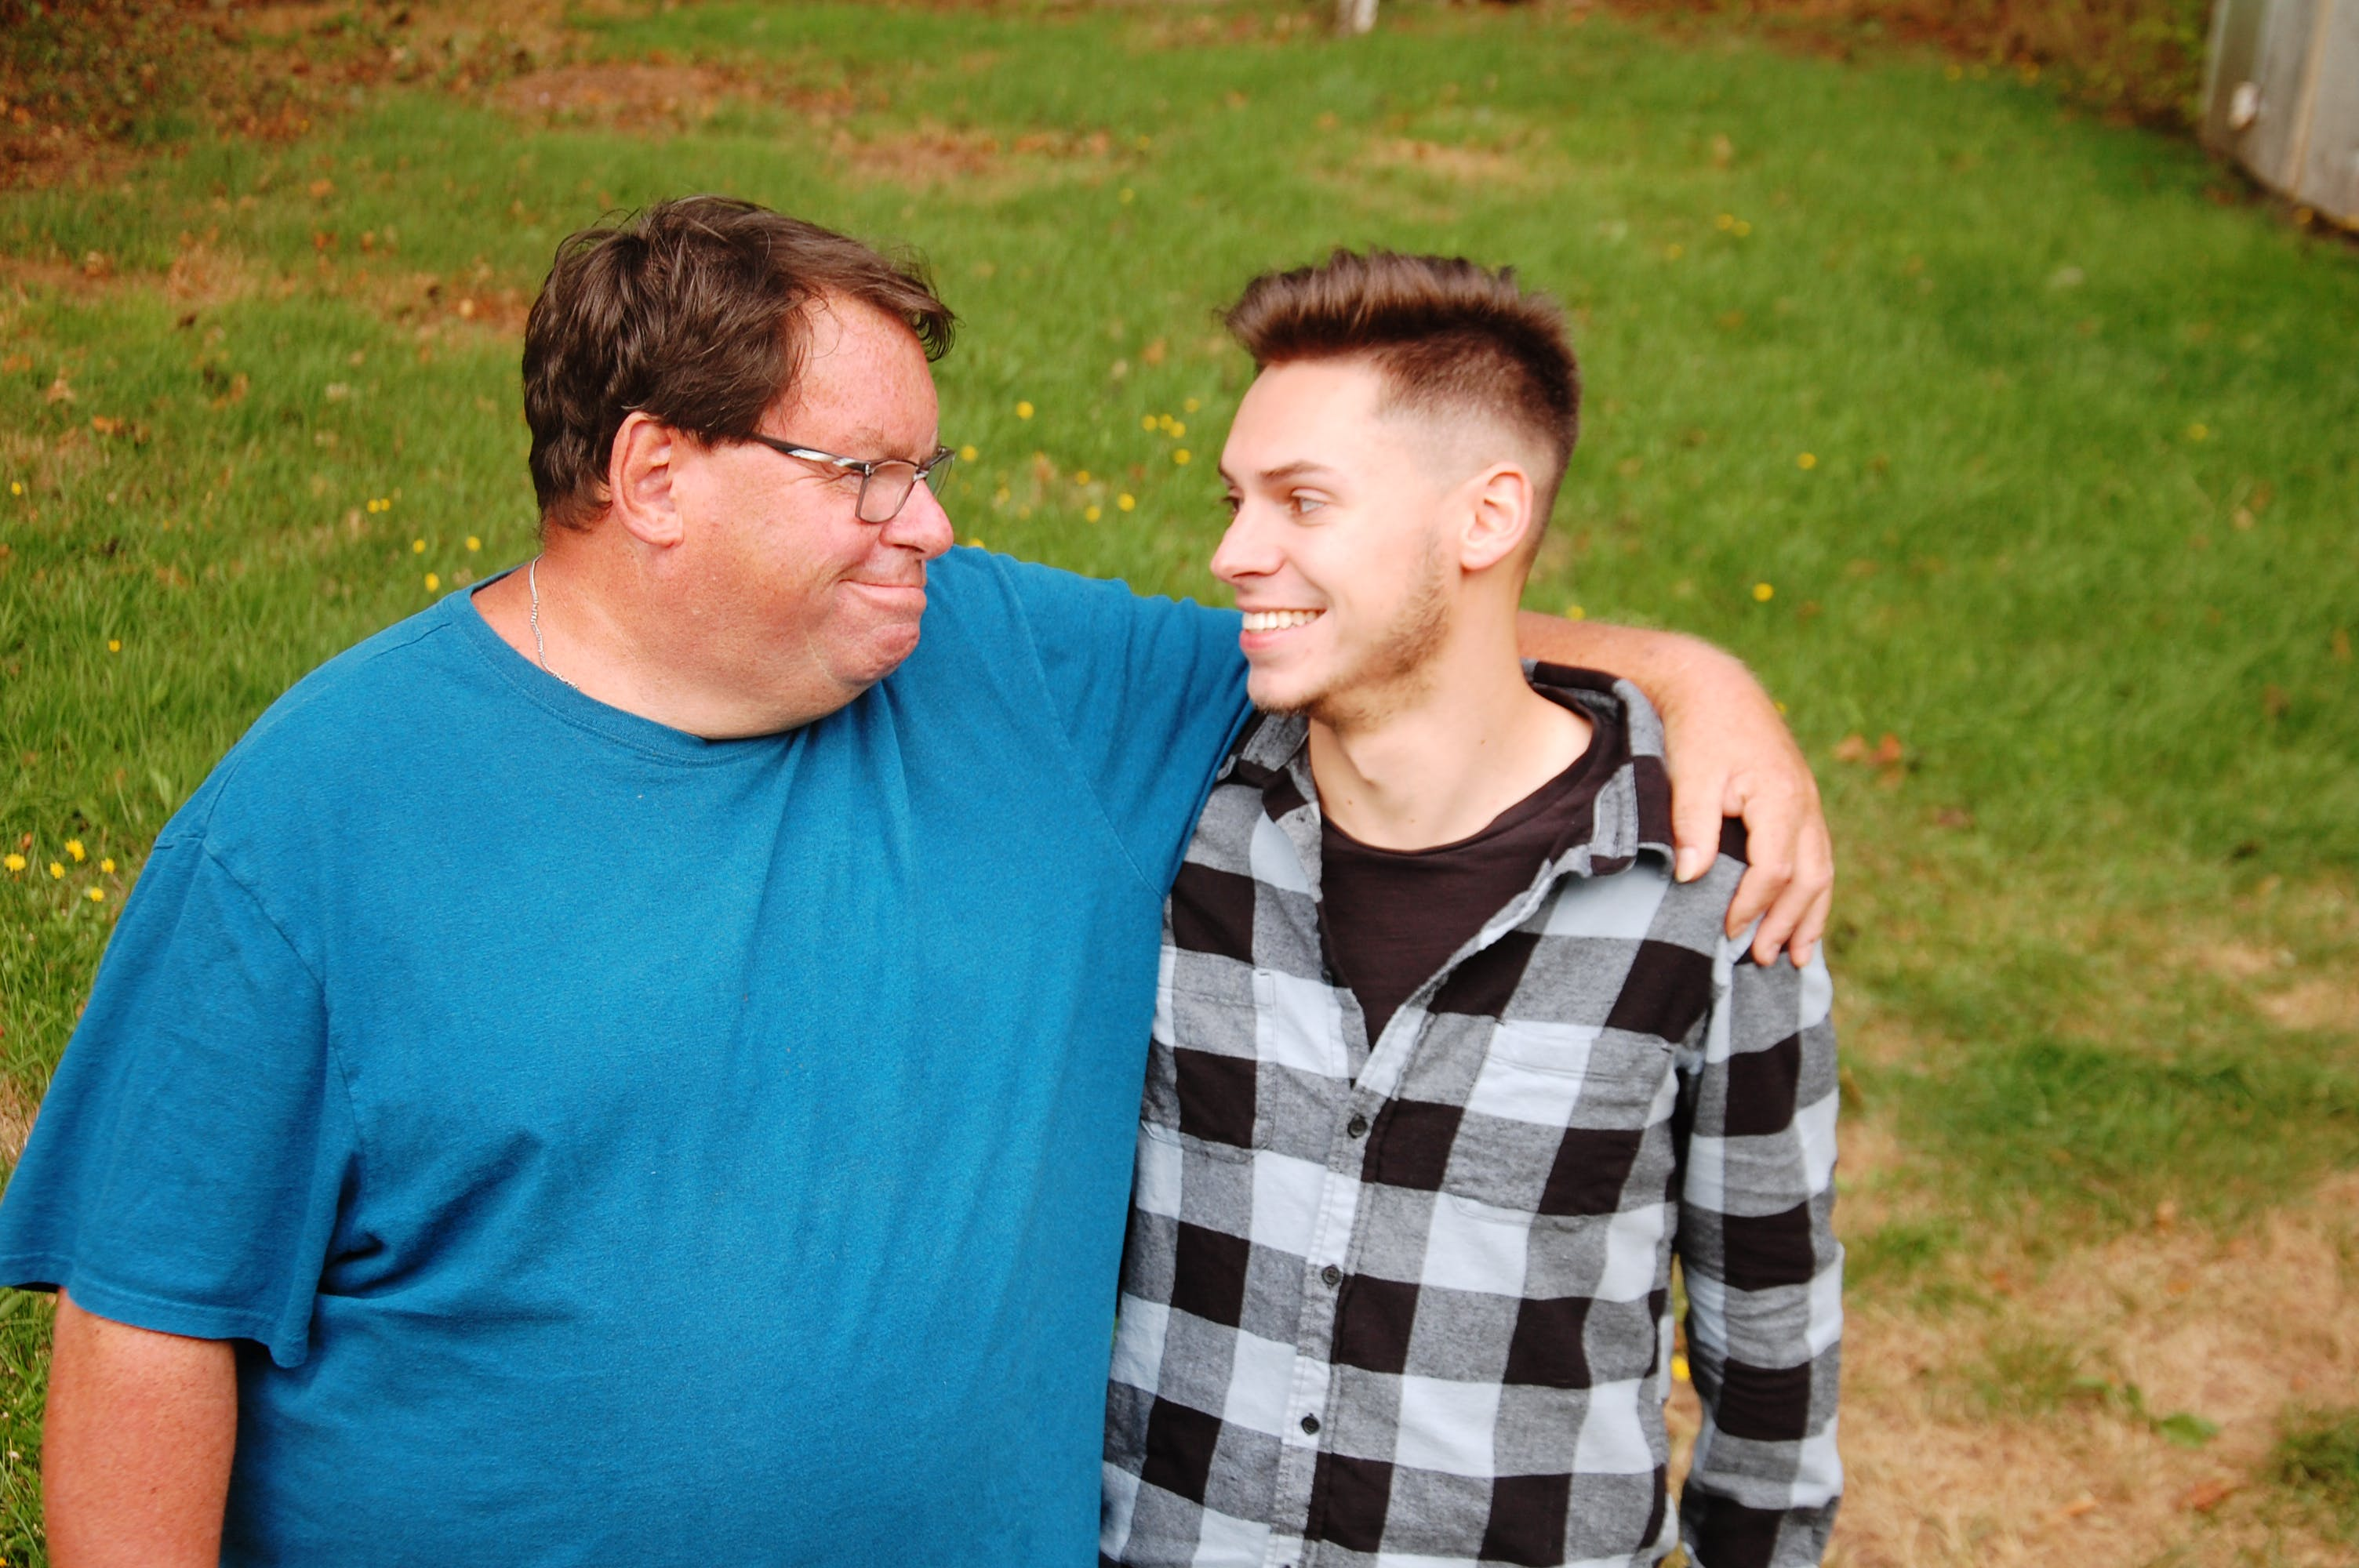 """Kenneth Murnaghan of Charlottetown says despite living with a serious brain injury, raising his son Tyler, who is now 26, """"was heaven...I loved it.''"""